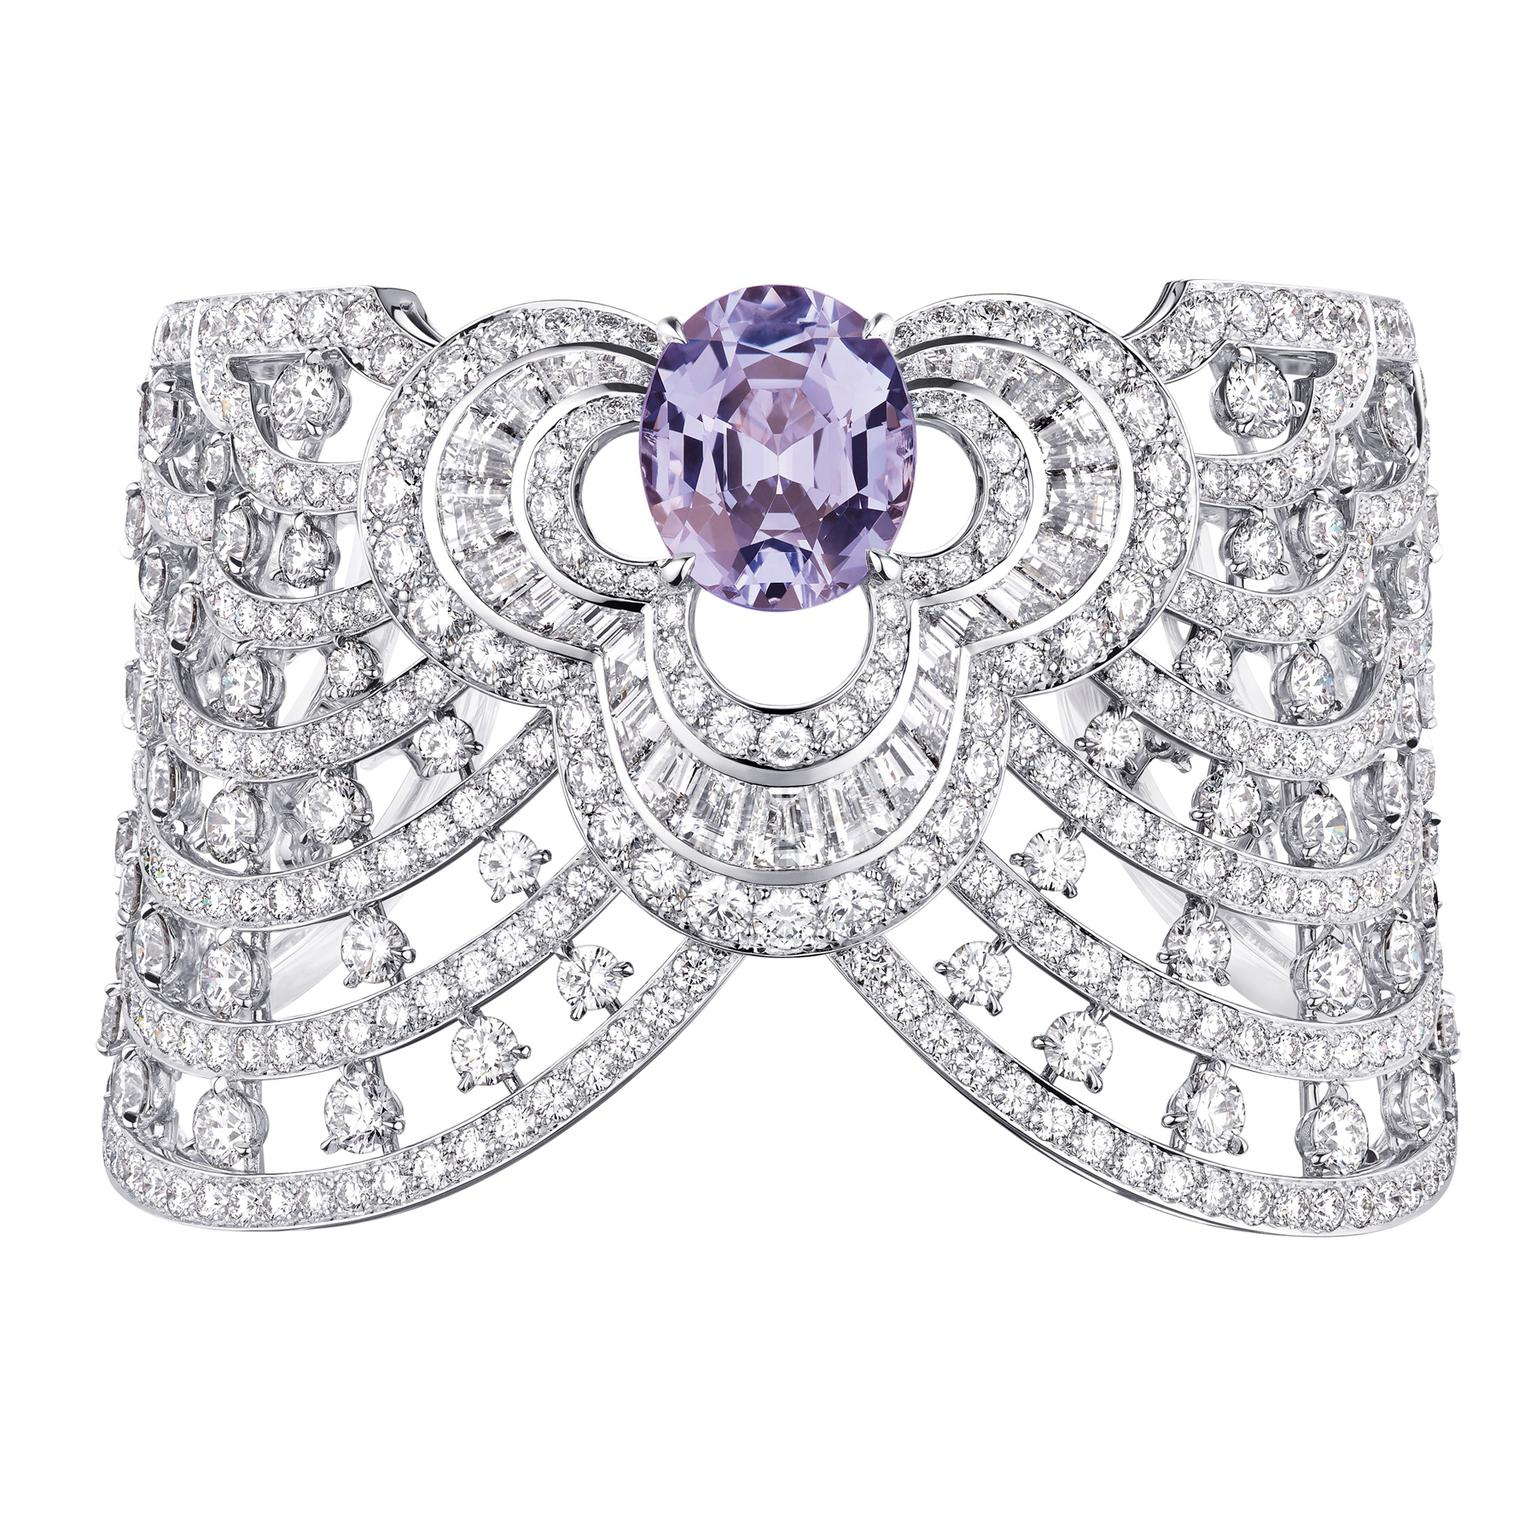 Louis Vuitton Blossom lavender spinel and diamond cuff